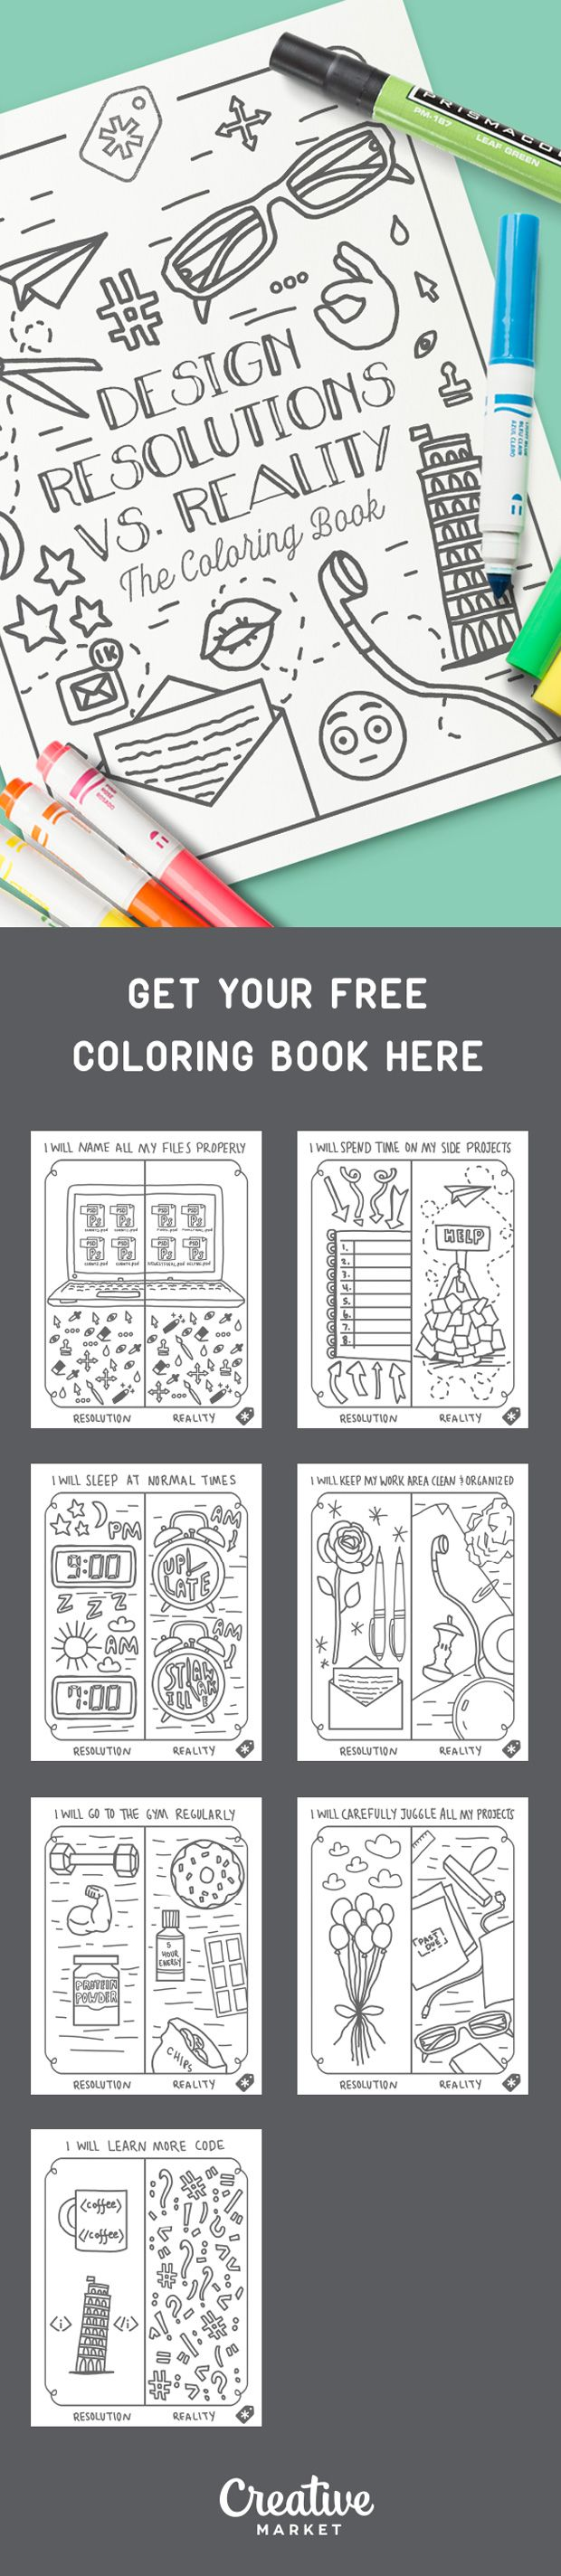 On the Creative Market Blog - Free Coloring Book: Design Resolutions vs. Reality